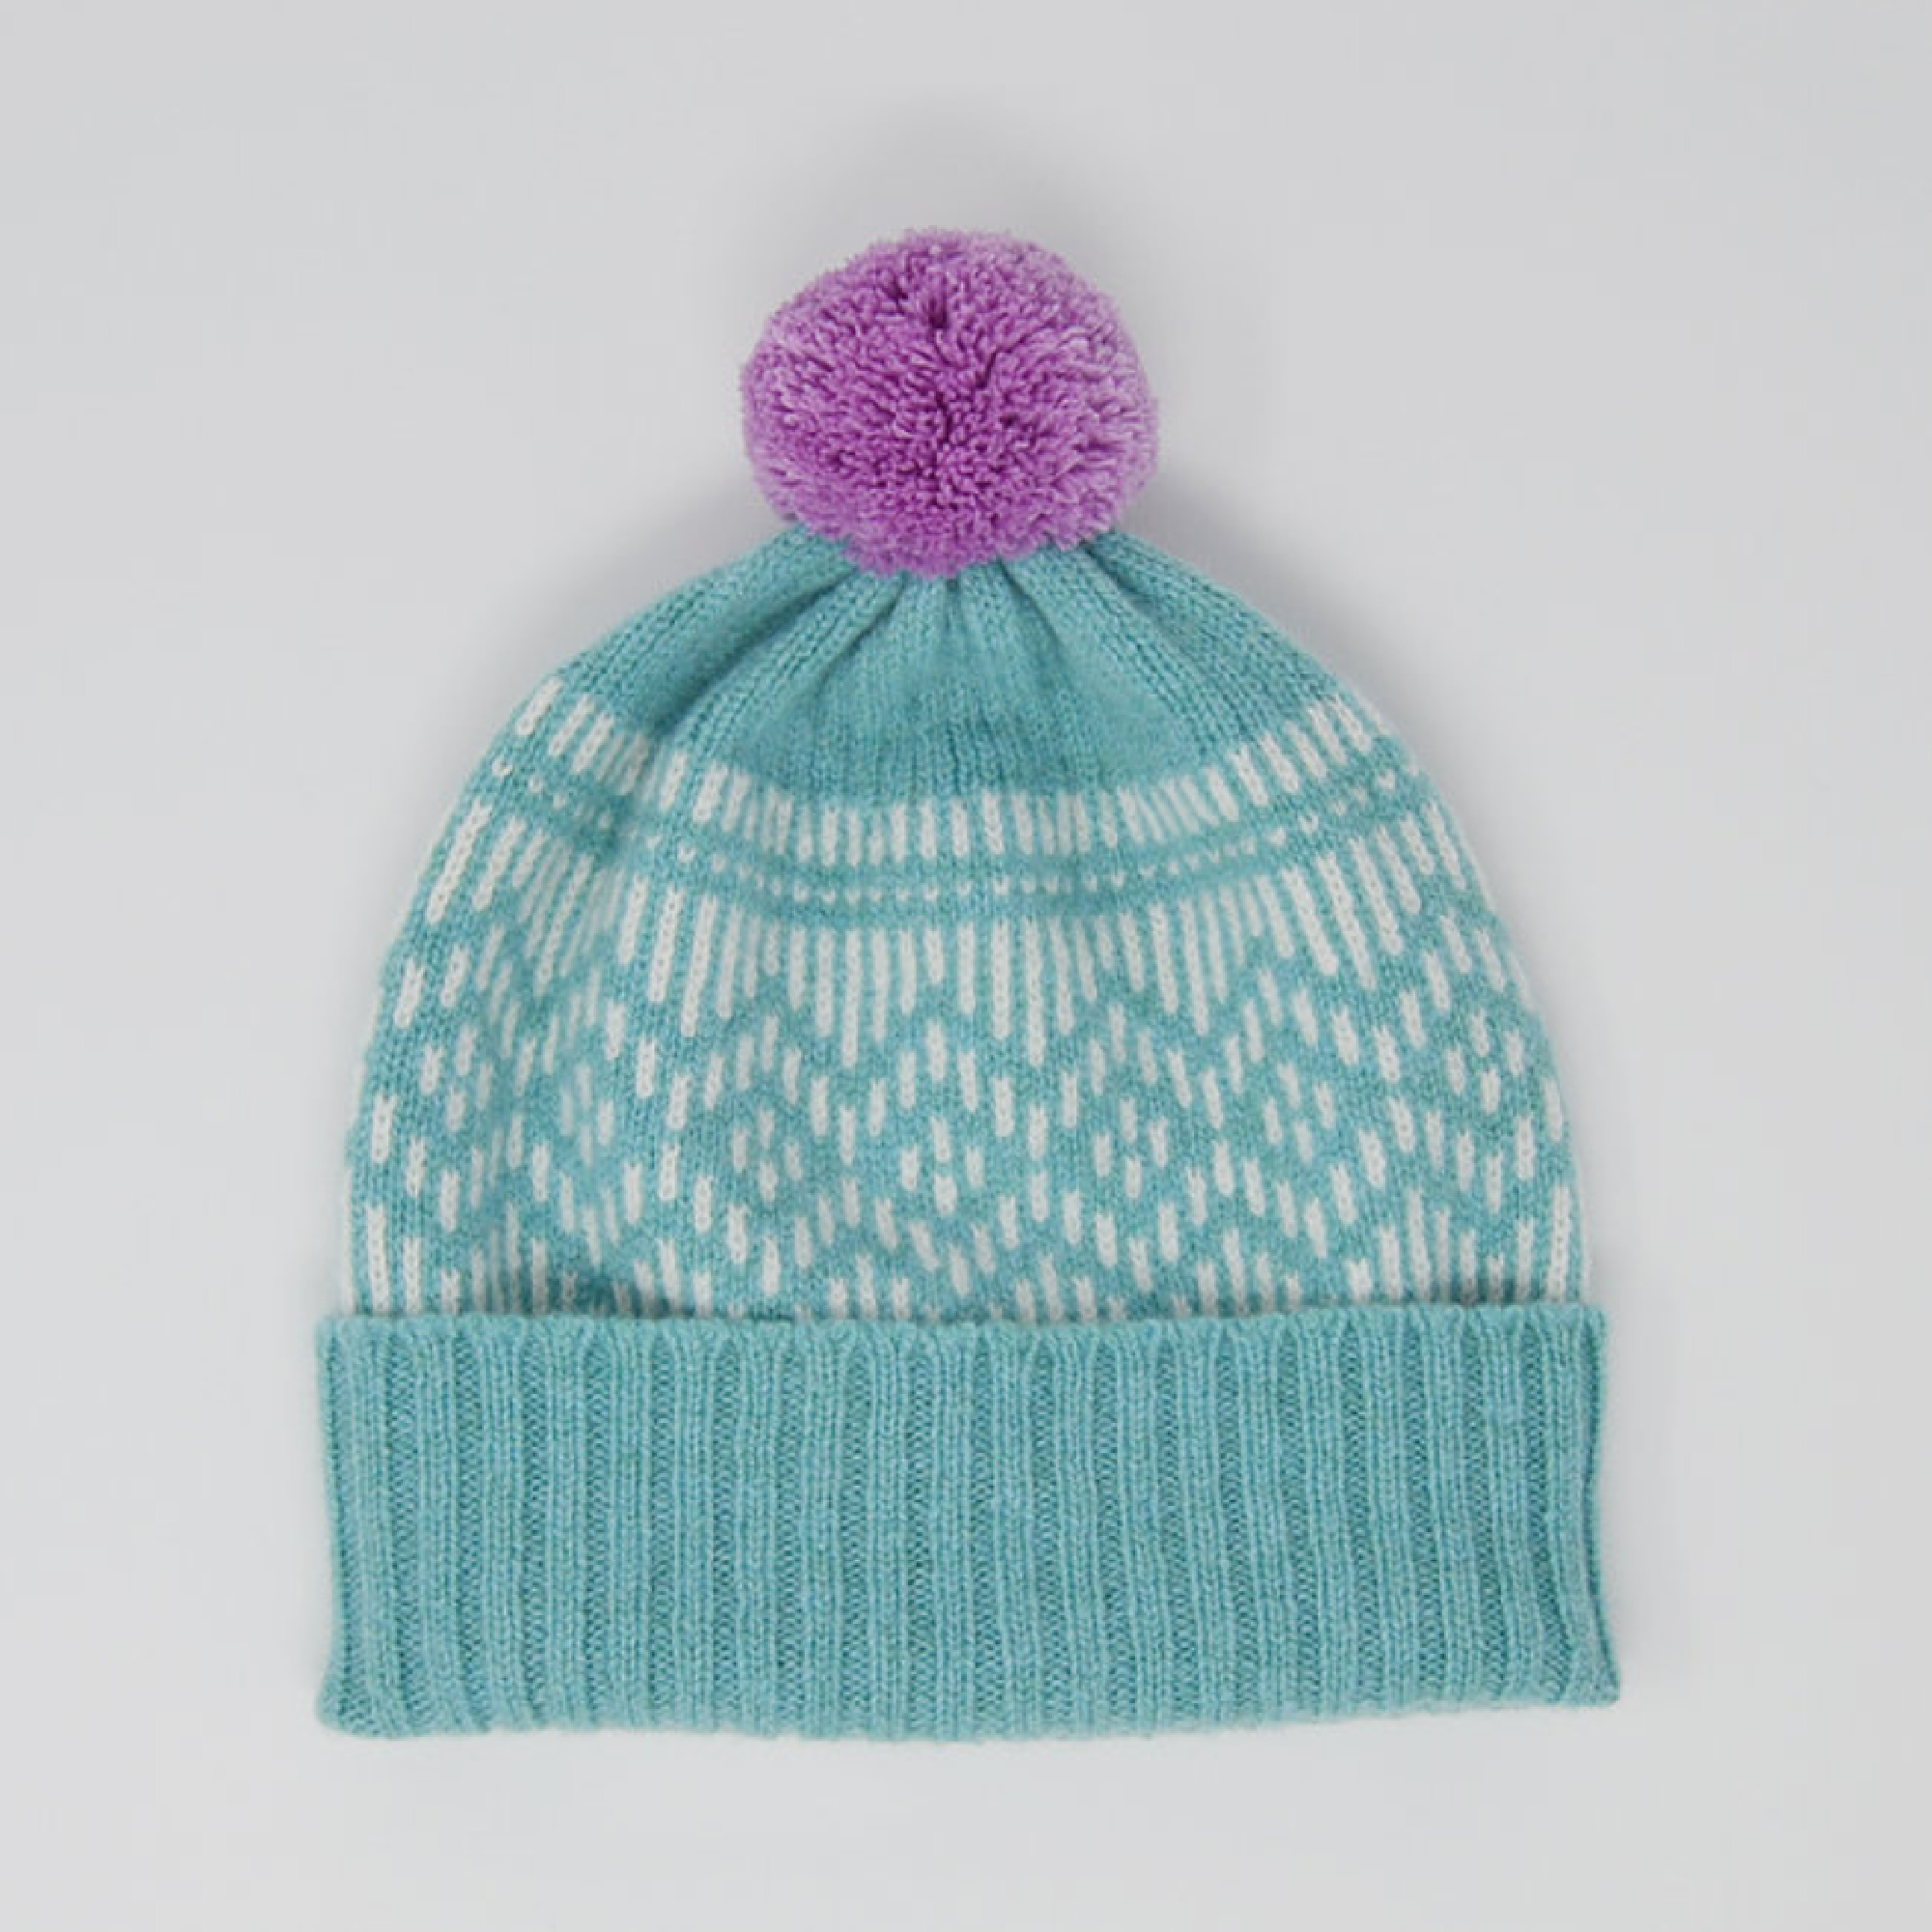 Dundee Graphics Pom Pom Hat by Scarlet Knitwear